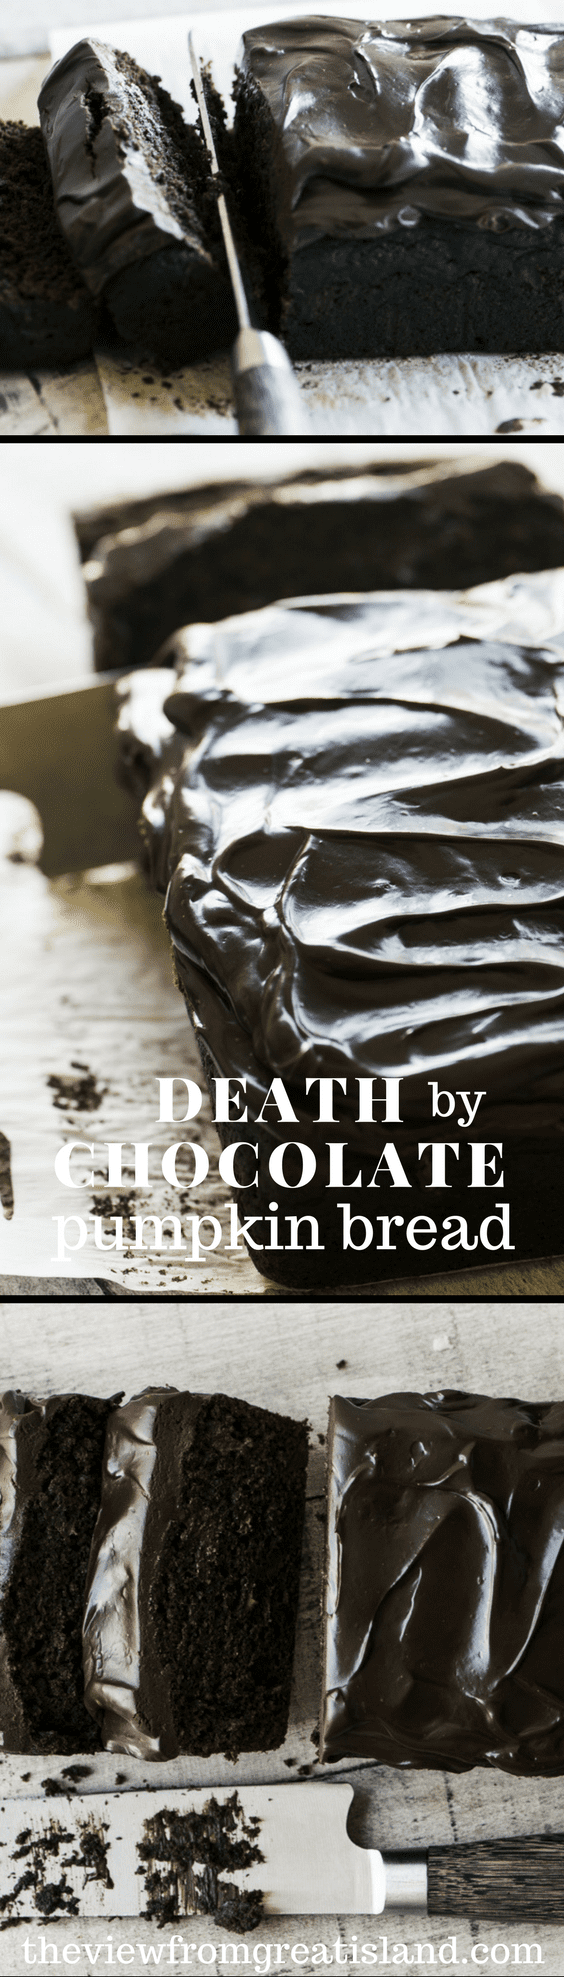 If you love pumpkin, or chocolate, you can't afford to pass up this Death by Chocolate Pumpkin Bread, it's quite decadently delicious, in a fall sort of way!  #pumpkincake #chocolatechippumpkinbread #cake #falldessert #dessert #chocolate #quickbread #loafcake #quickbread